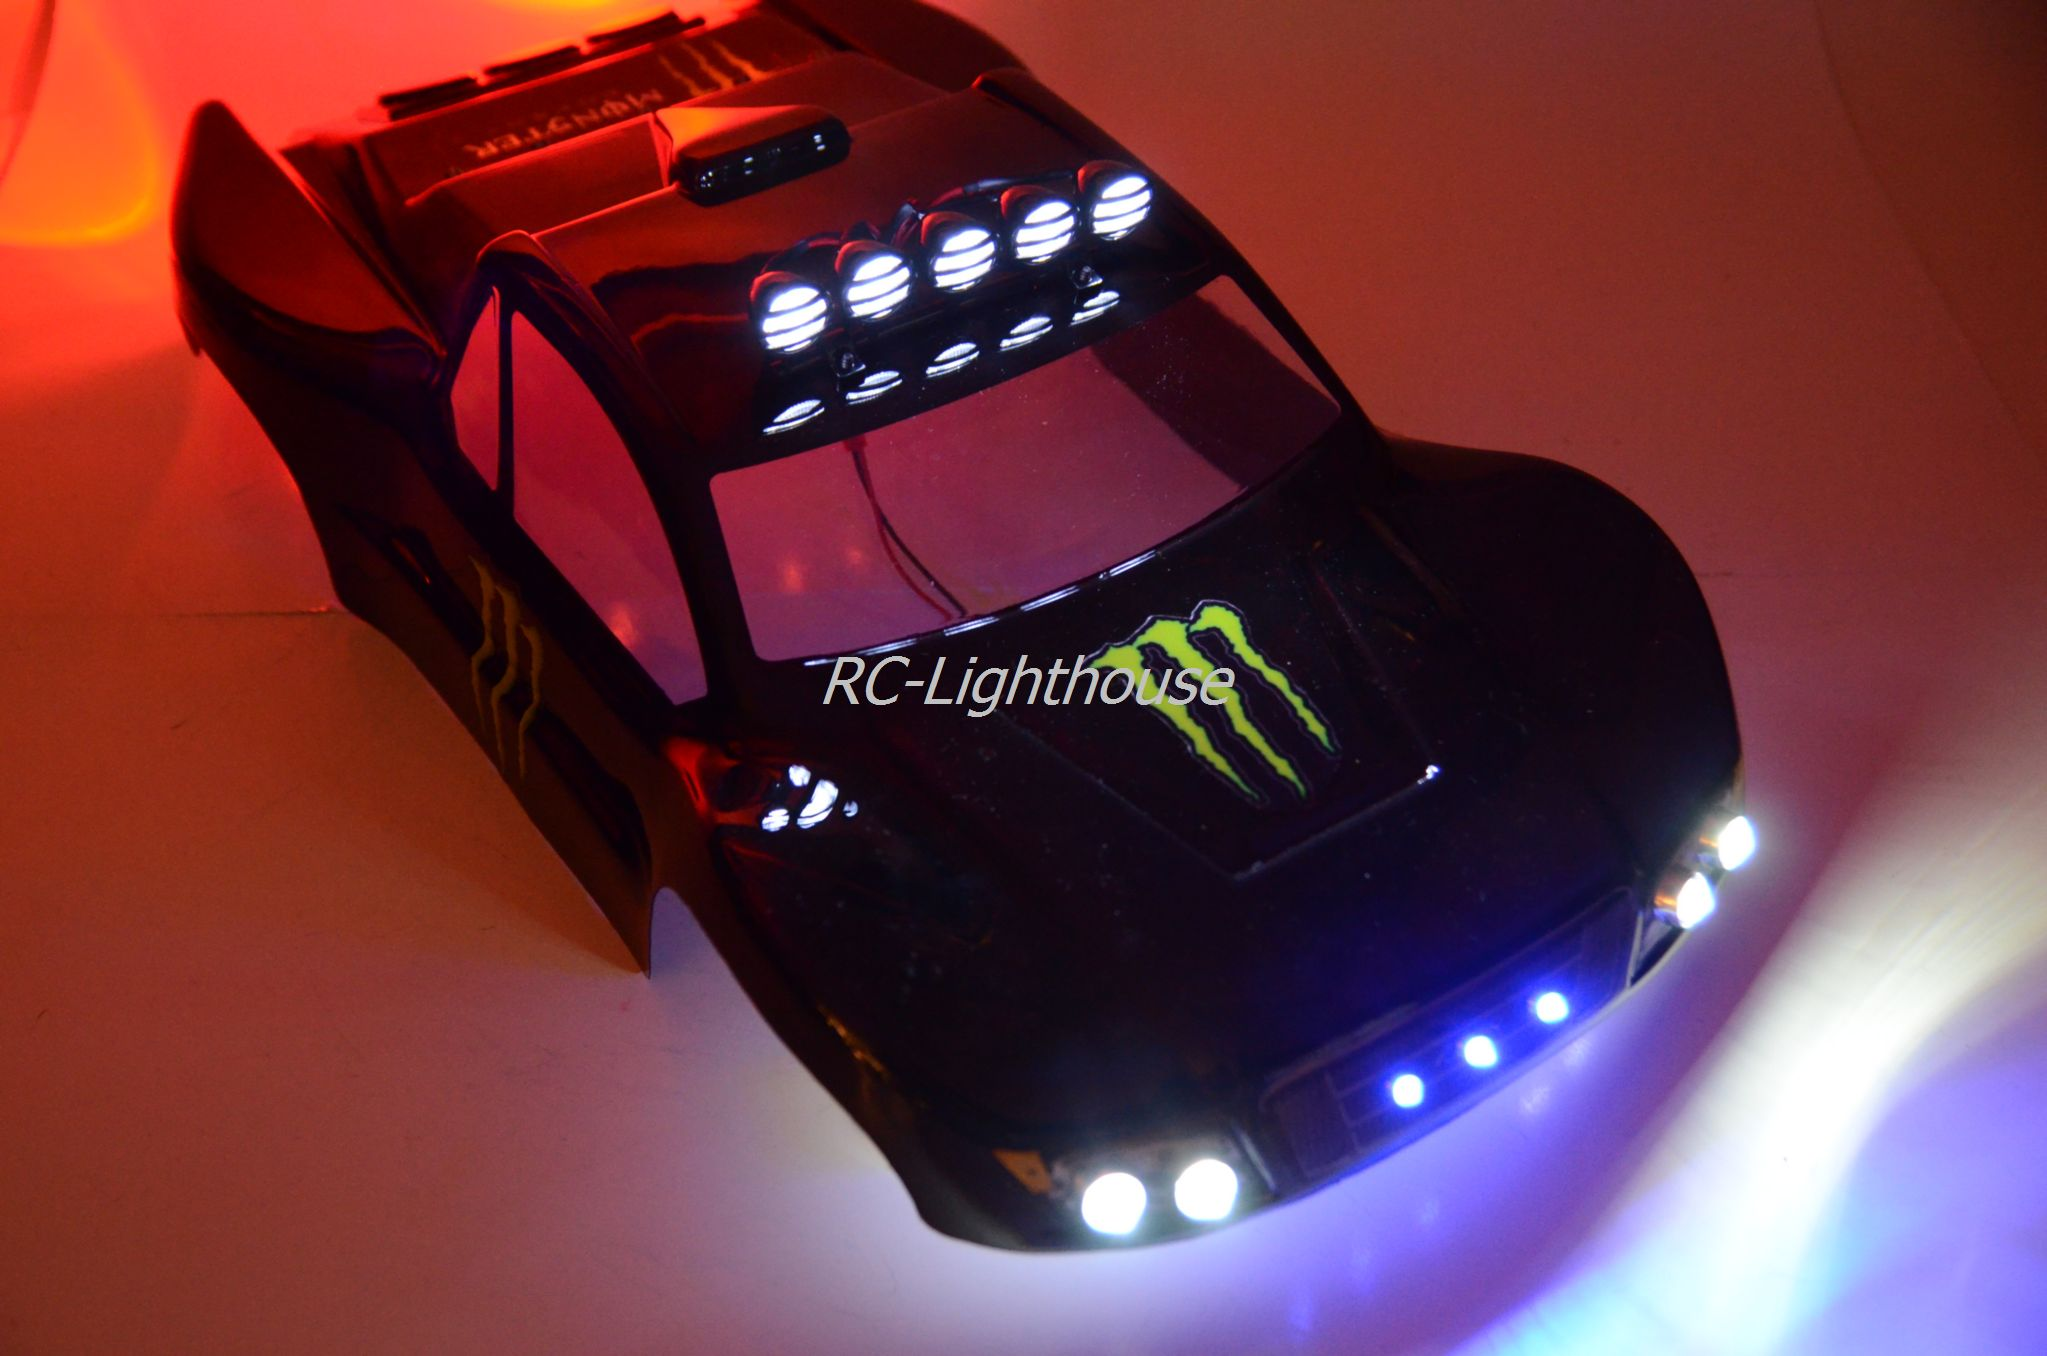 Lighting Kits Sets, Spares Accessories from Modelsport UK